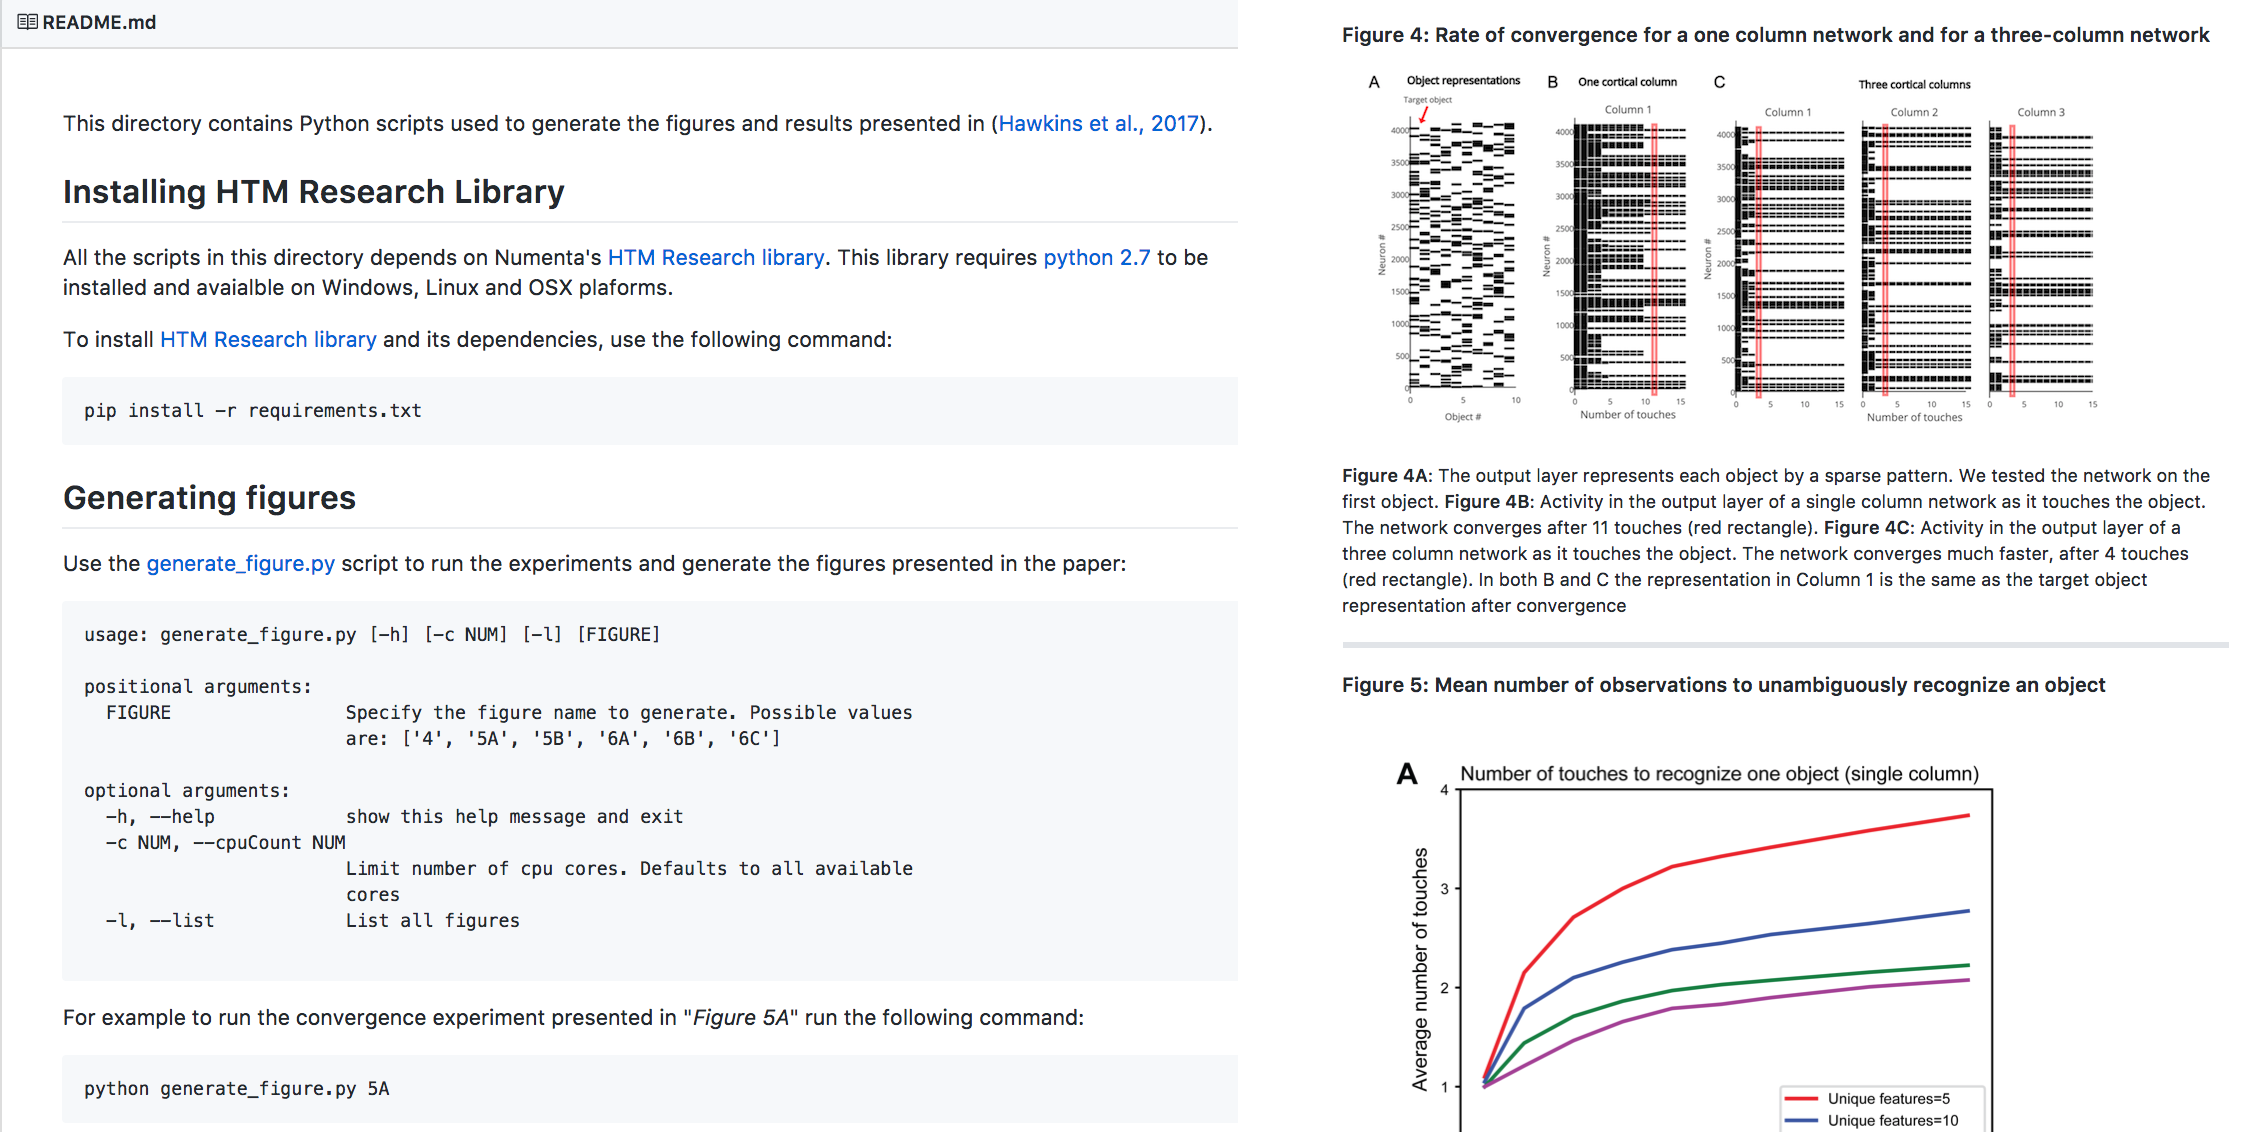 Replicating Scientific Results - Repository Readme Instructions and Figures